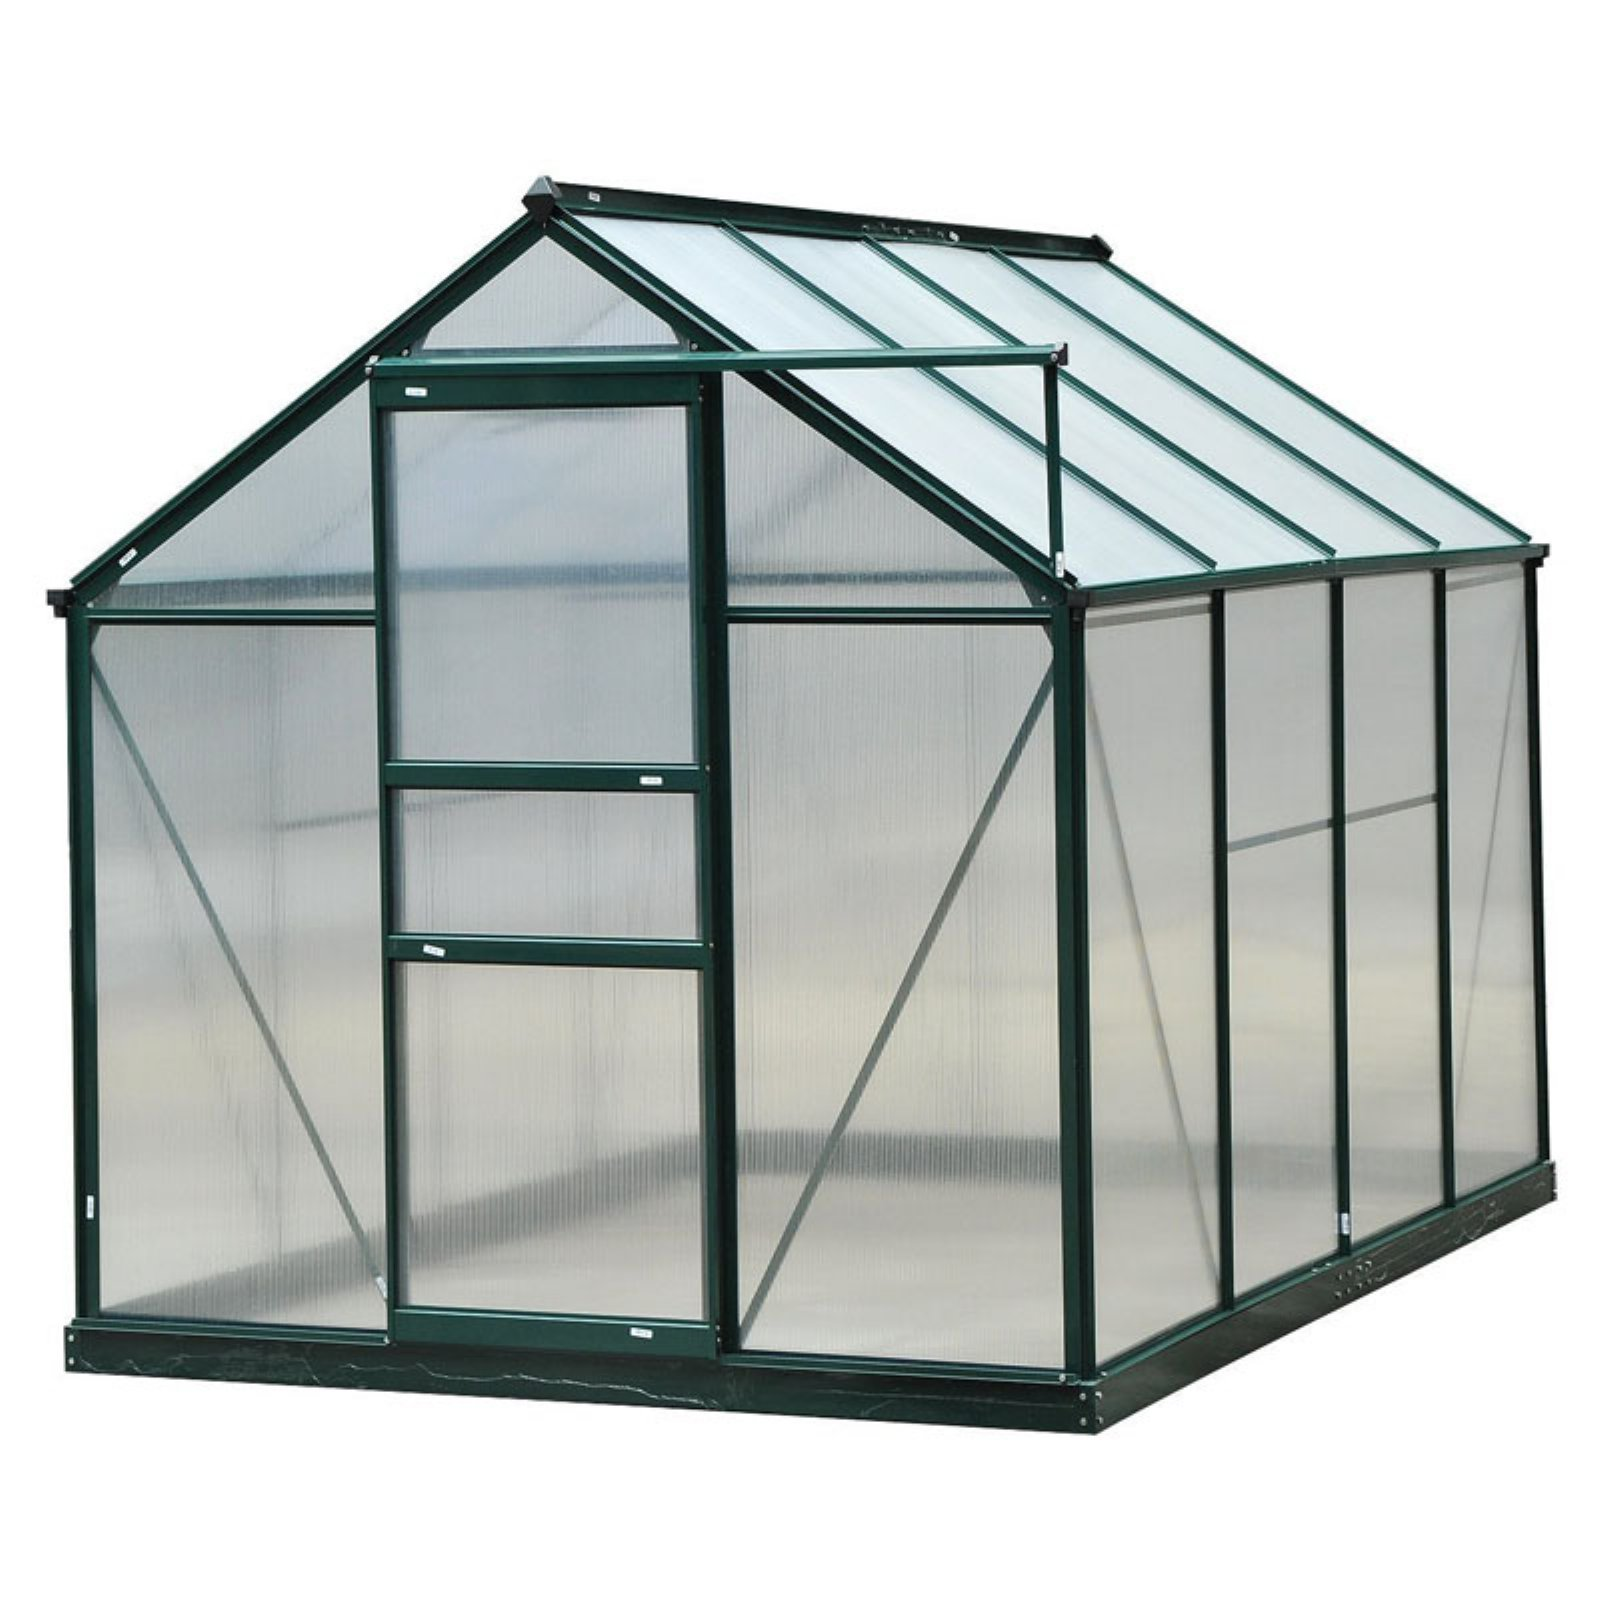 Outsunny Polycarbonate Portable Walk-In Garden Greenhouse by Aosom LLC